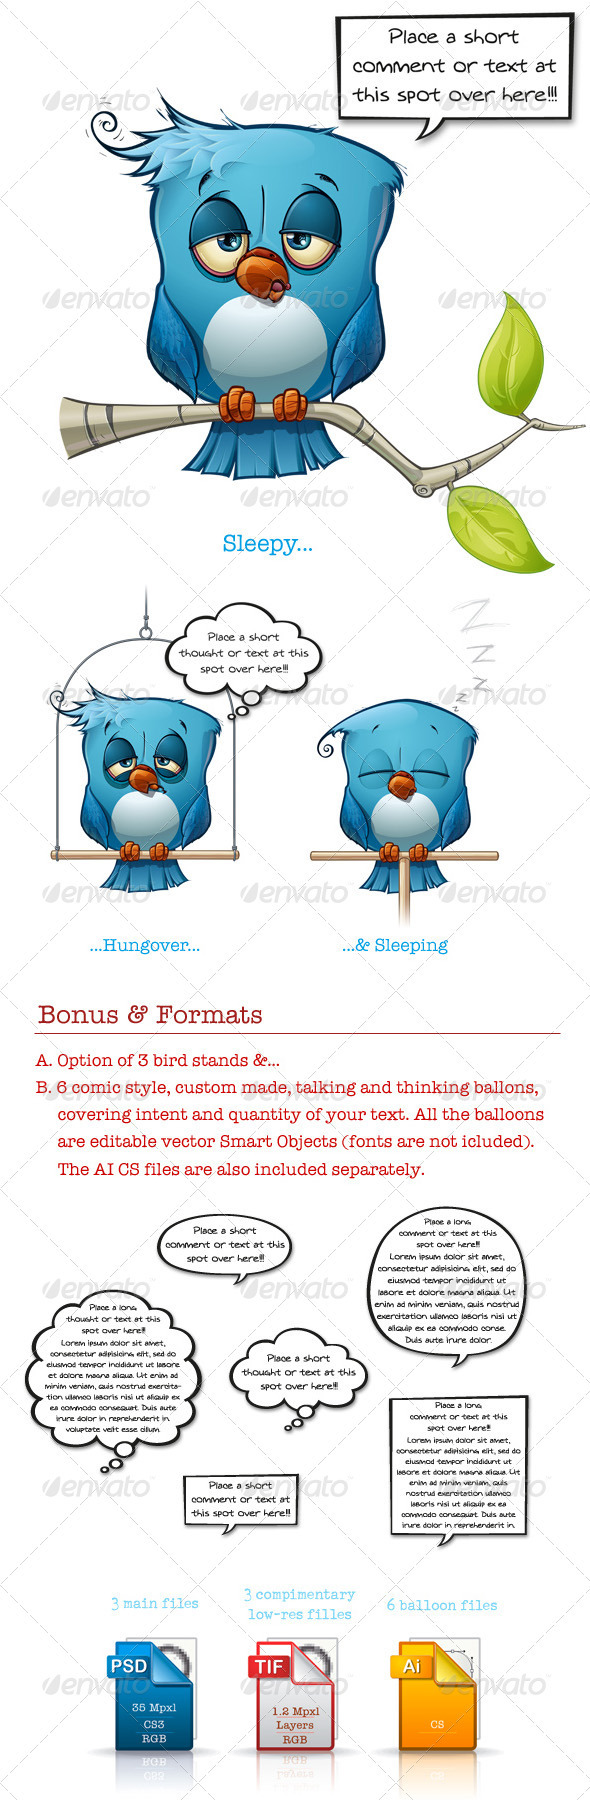 GraphicRiver Blue Bird Sleepy-Hangover-Sleeping 3501938